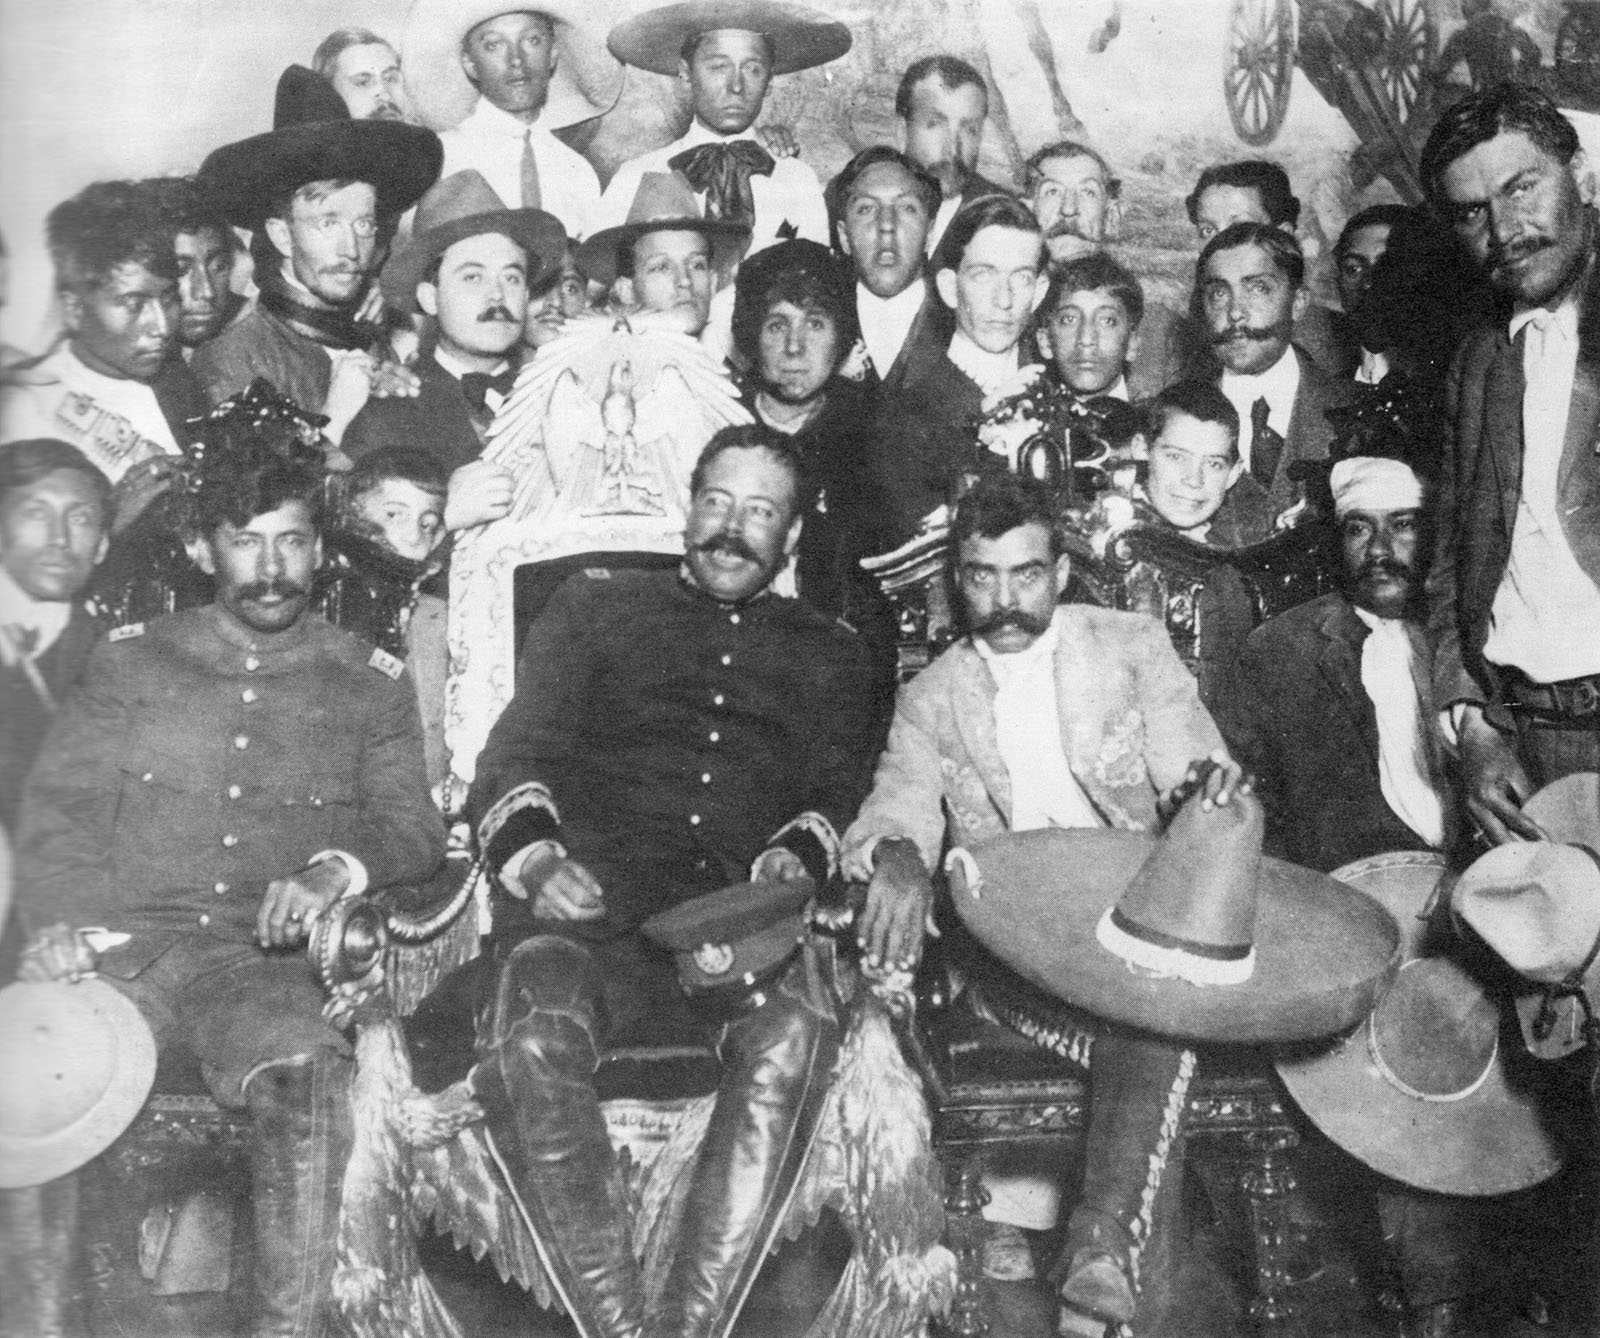 historical wallpapers emiliano zapata 1879 1919